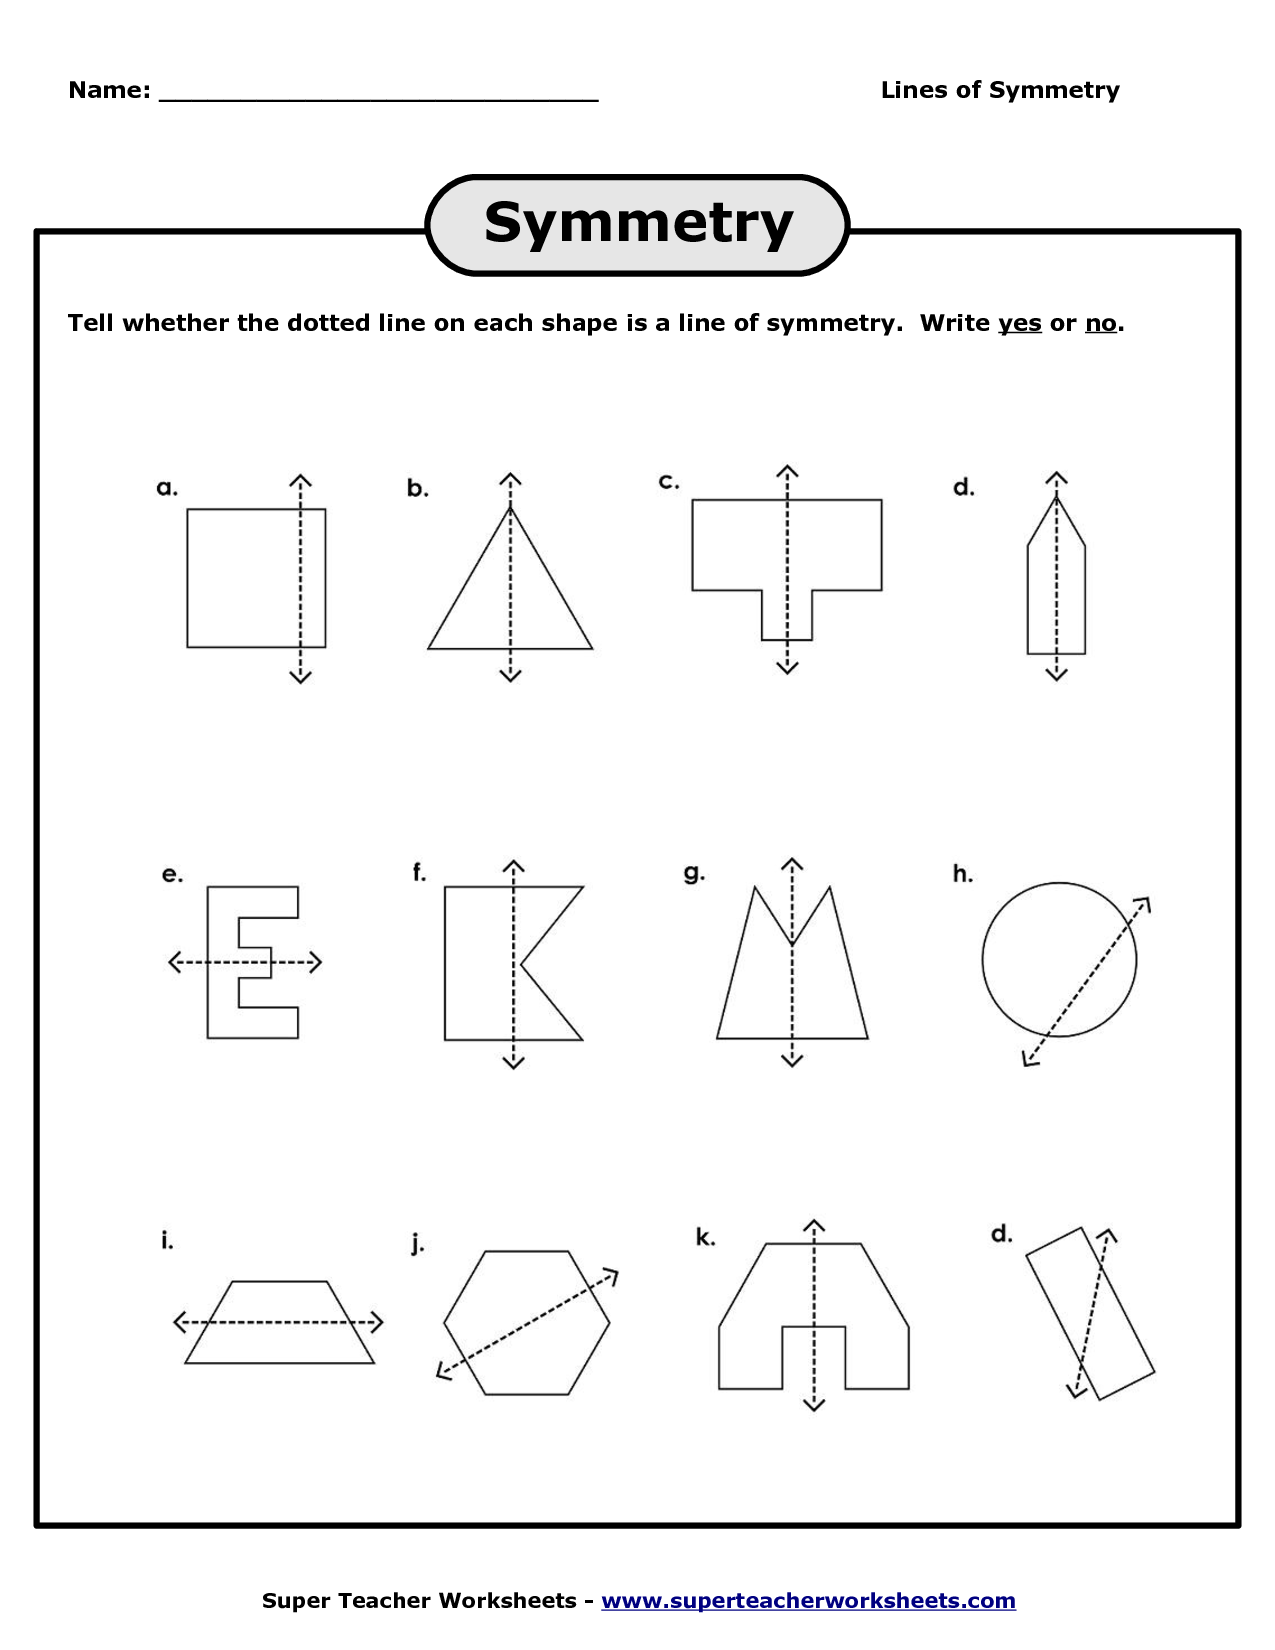 Drawing With Lines And Shapes : Lines of symmetry worksheets worksheet